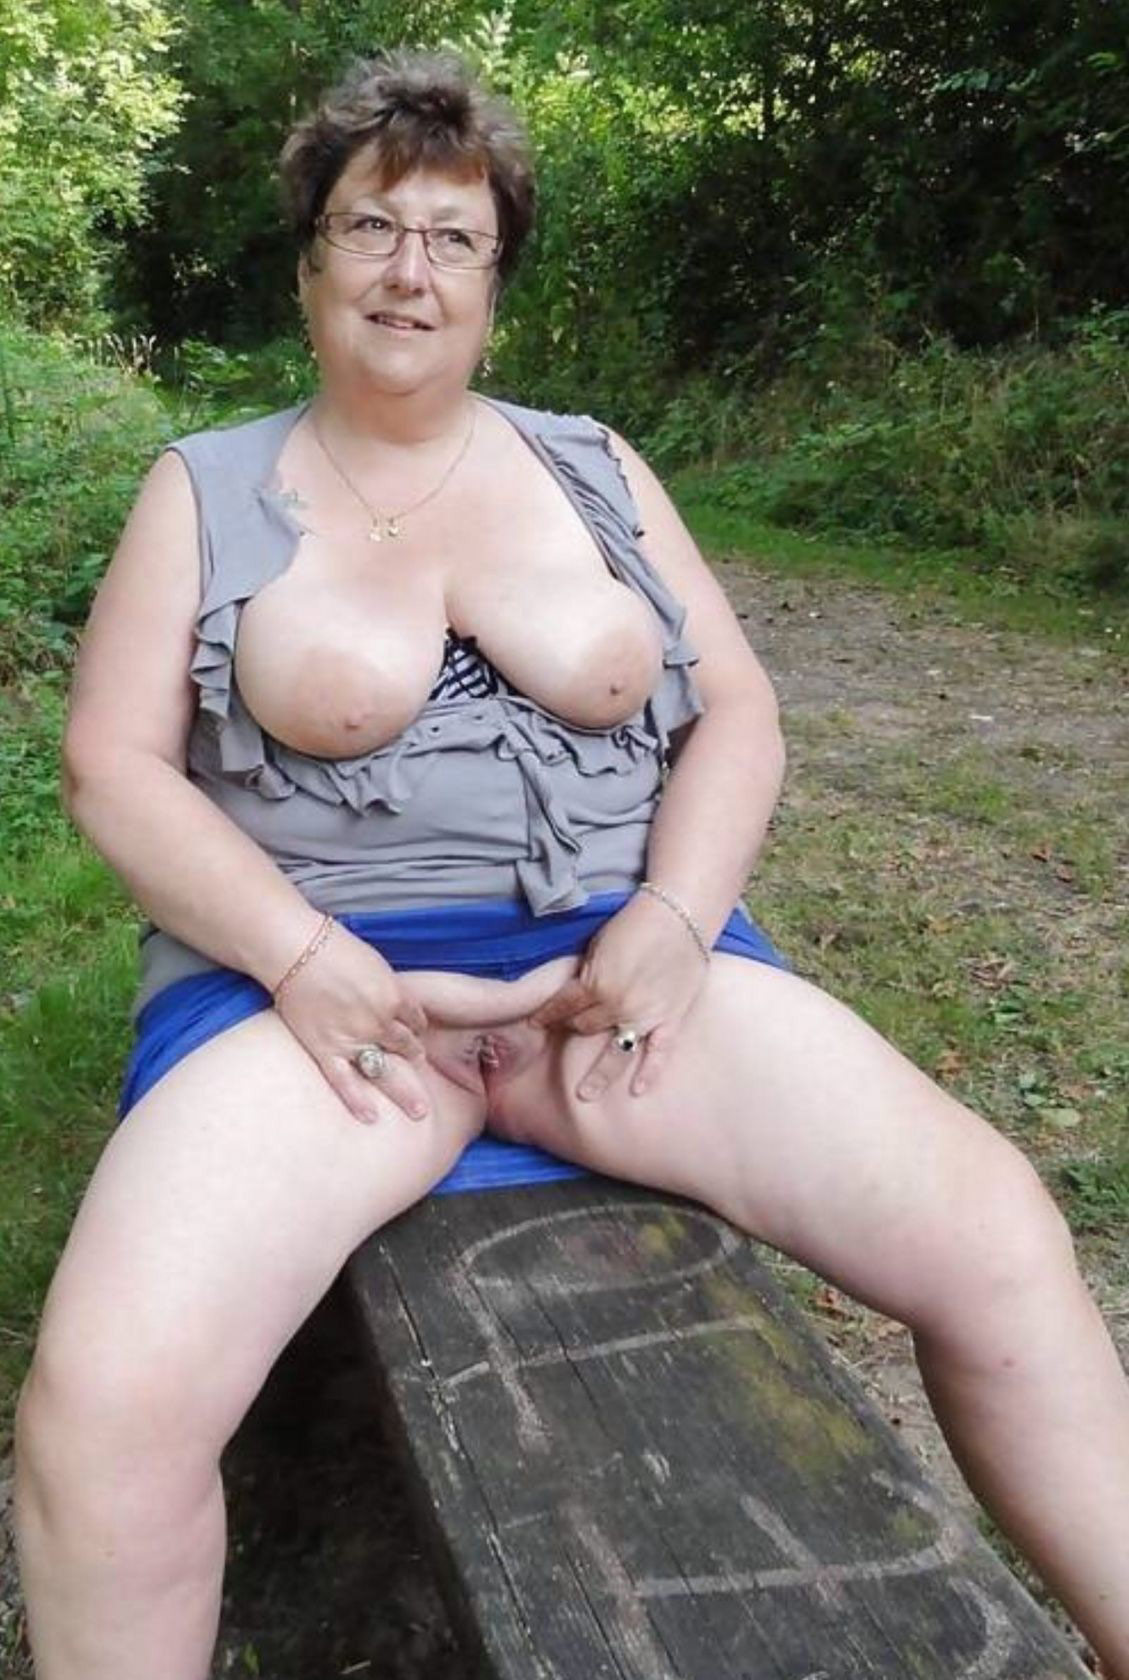 jamie hill hot images